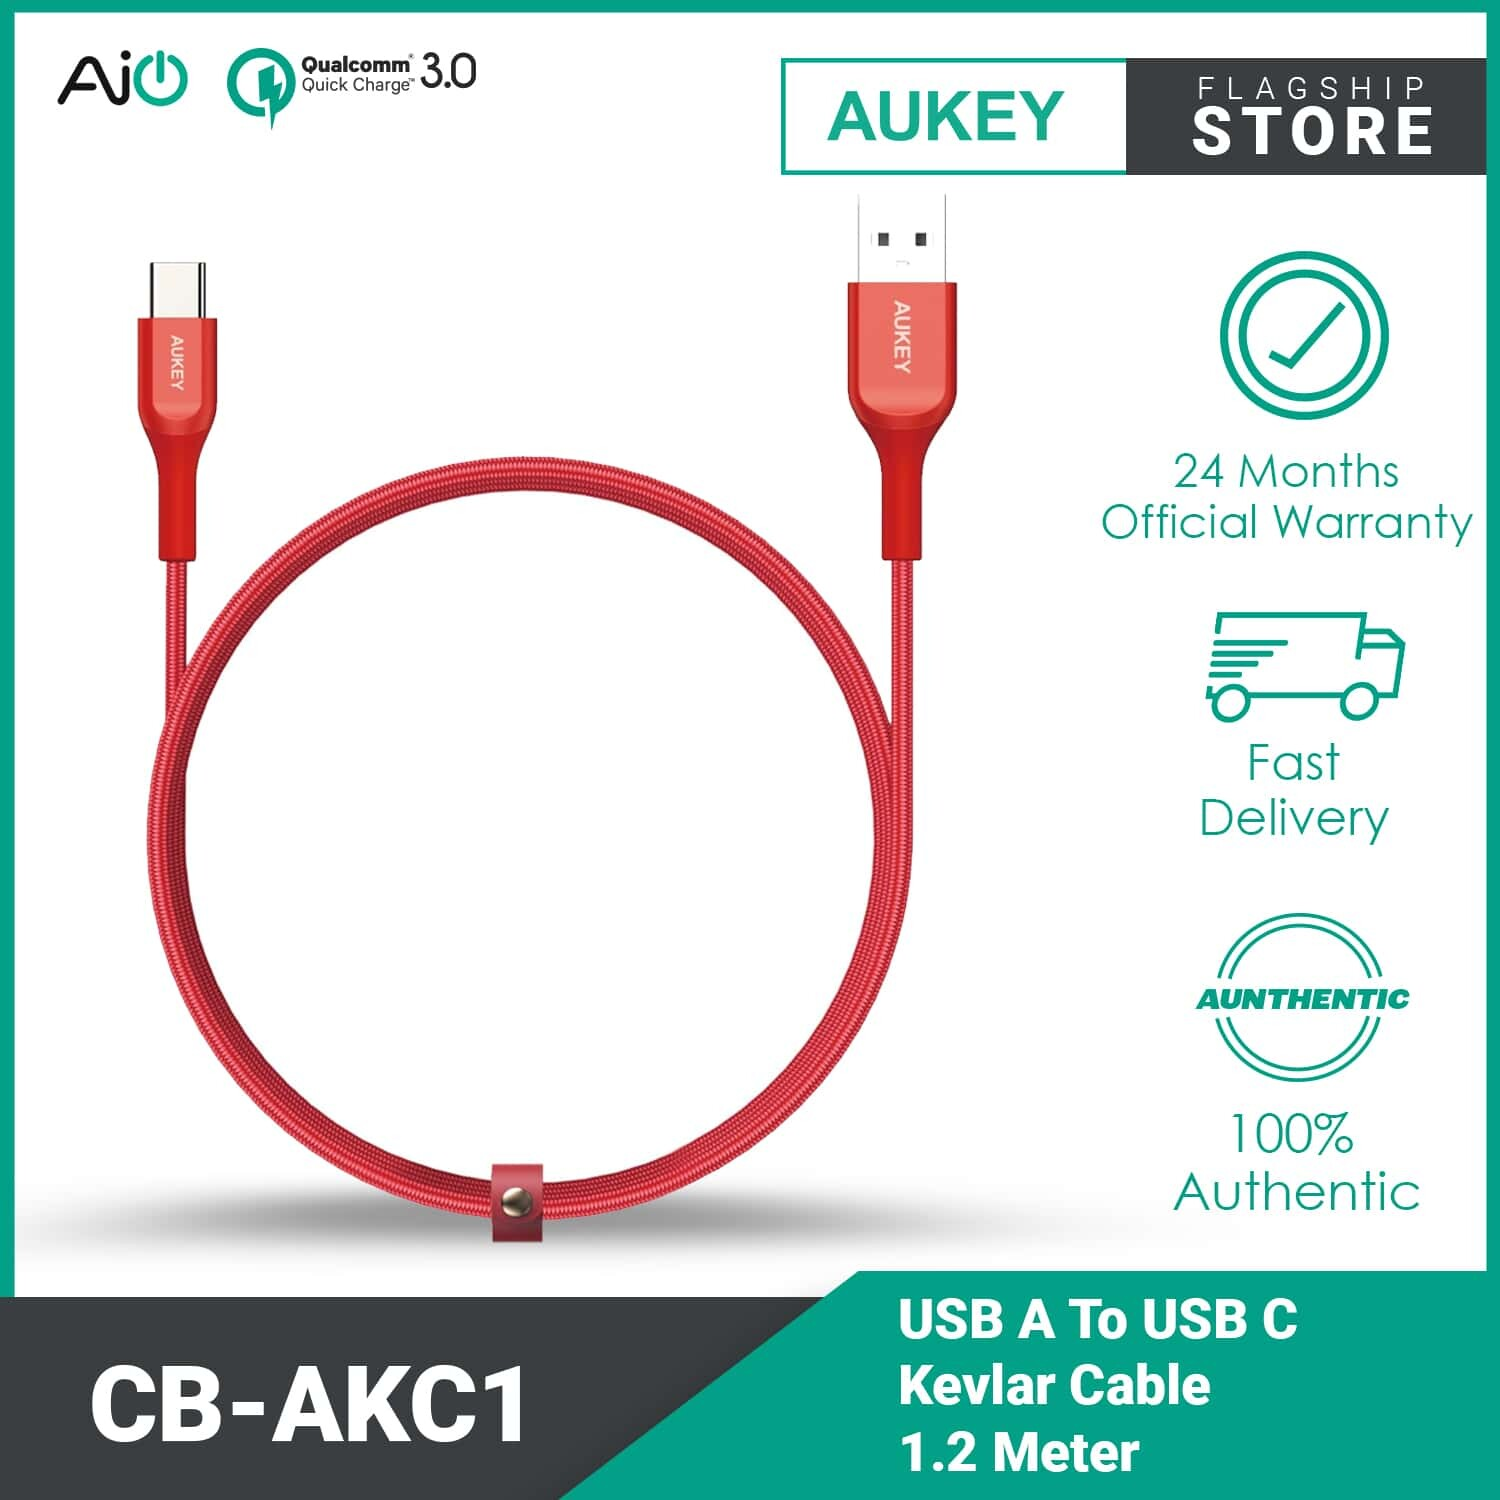 Aukey CB-AKC1 USB A To USB C Quick Charge 3.0 Kevlar Cable - 1.2M